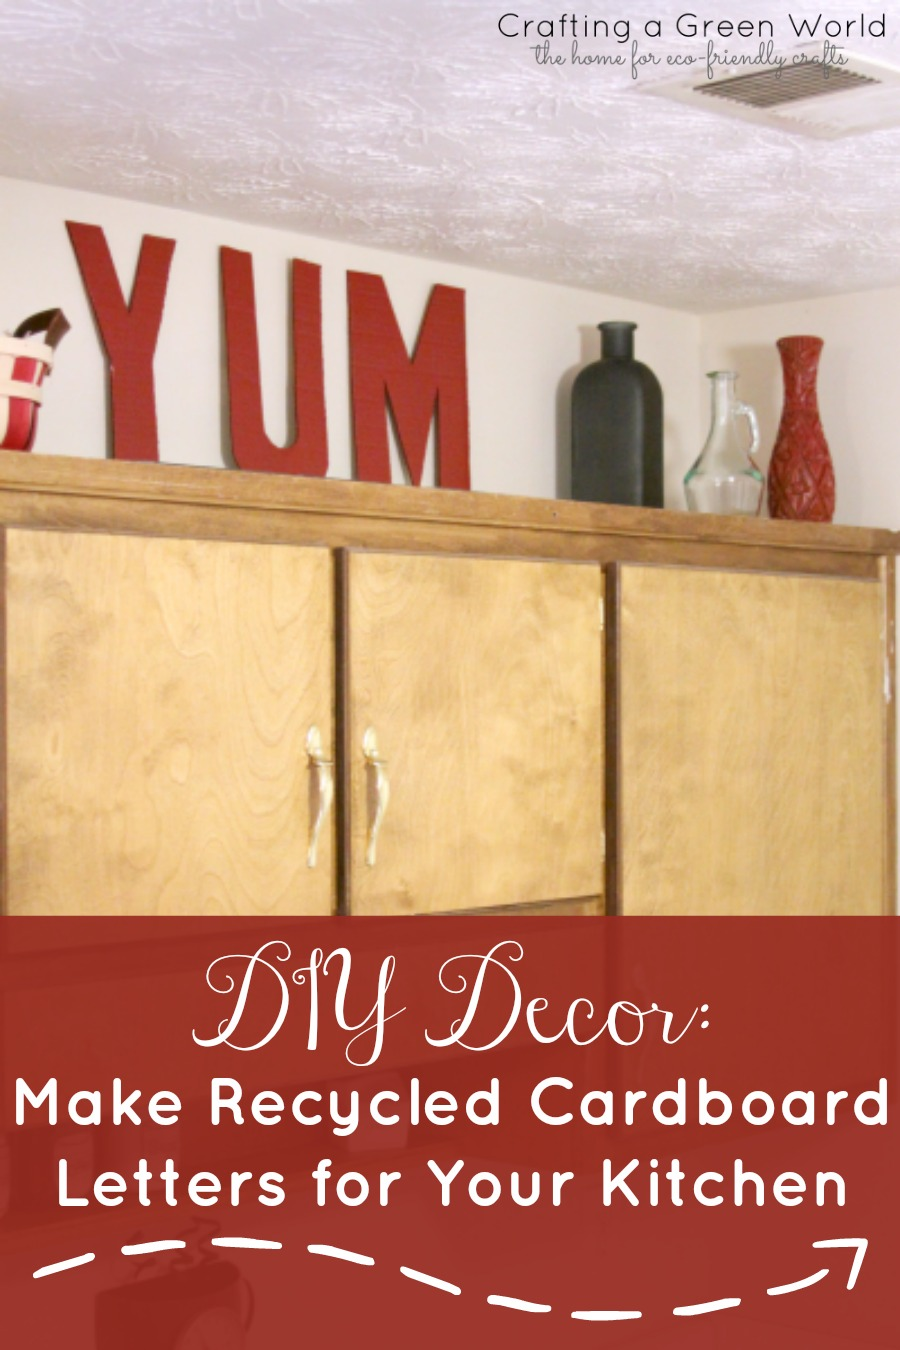 DIY Decor Make Recycled Cardboard Letters for Your Kitchen  Crafting a Green World